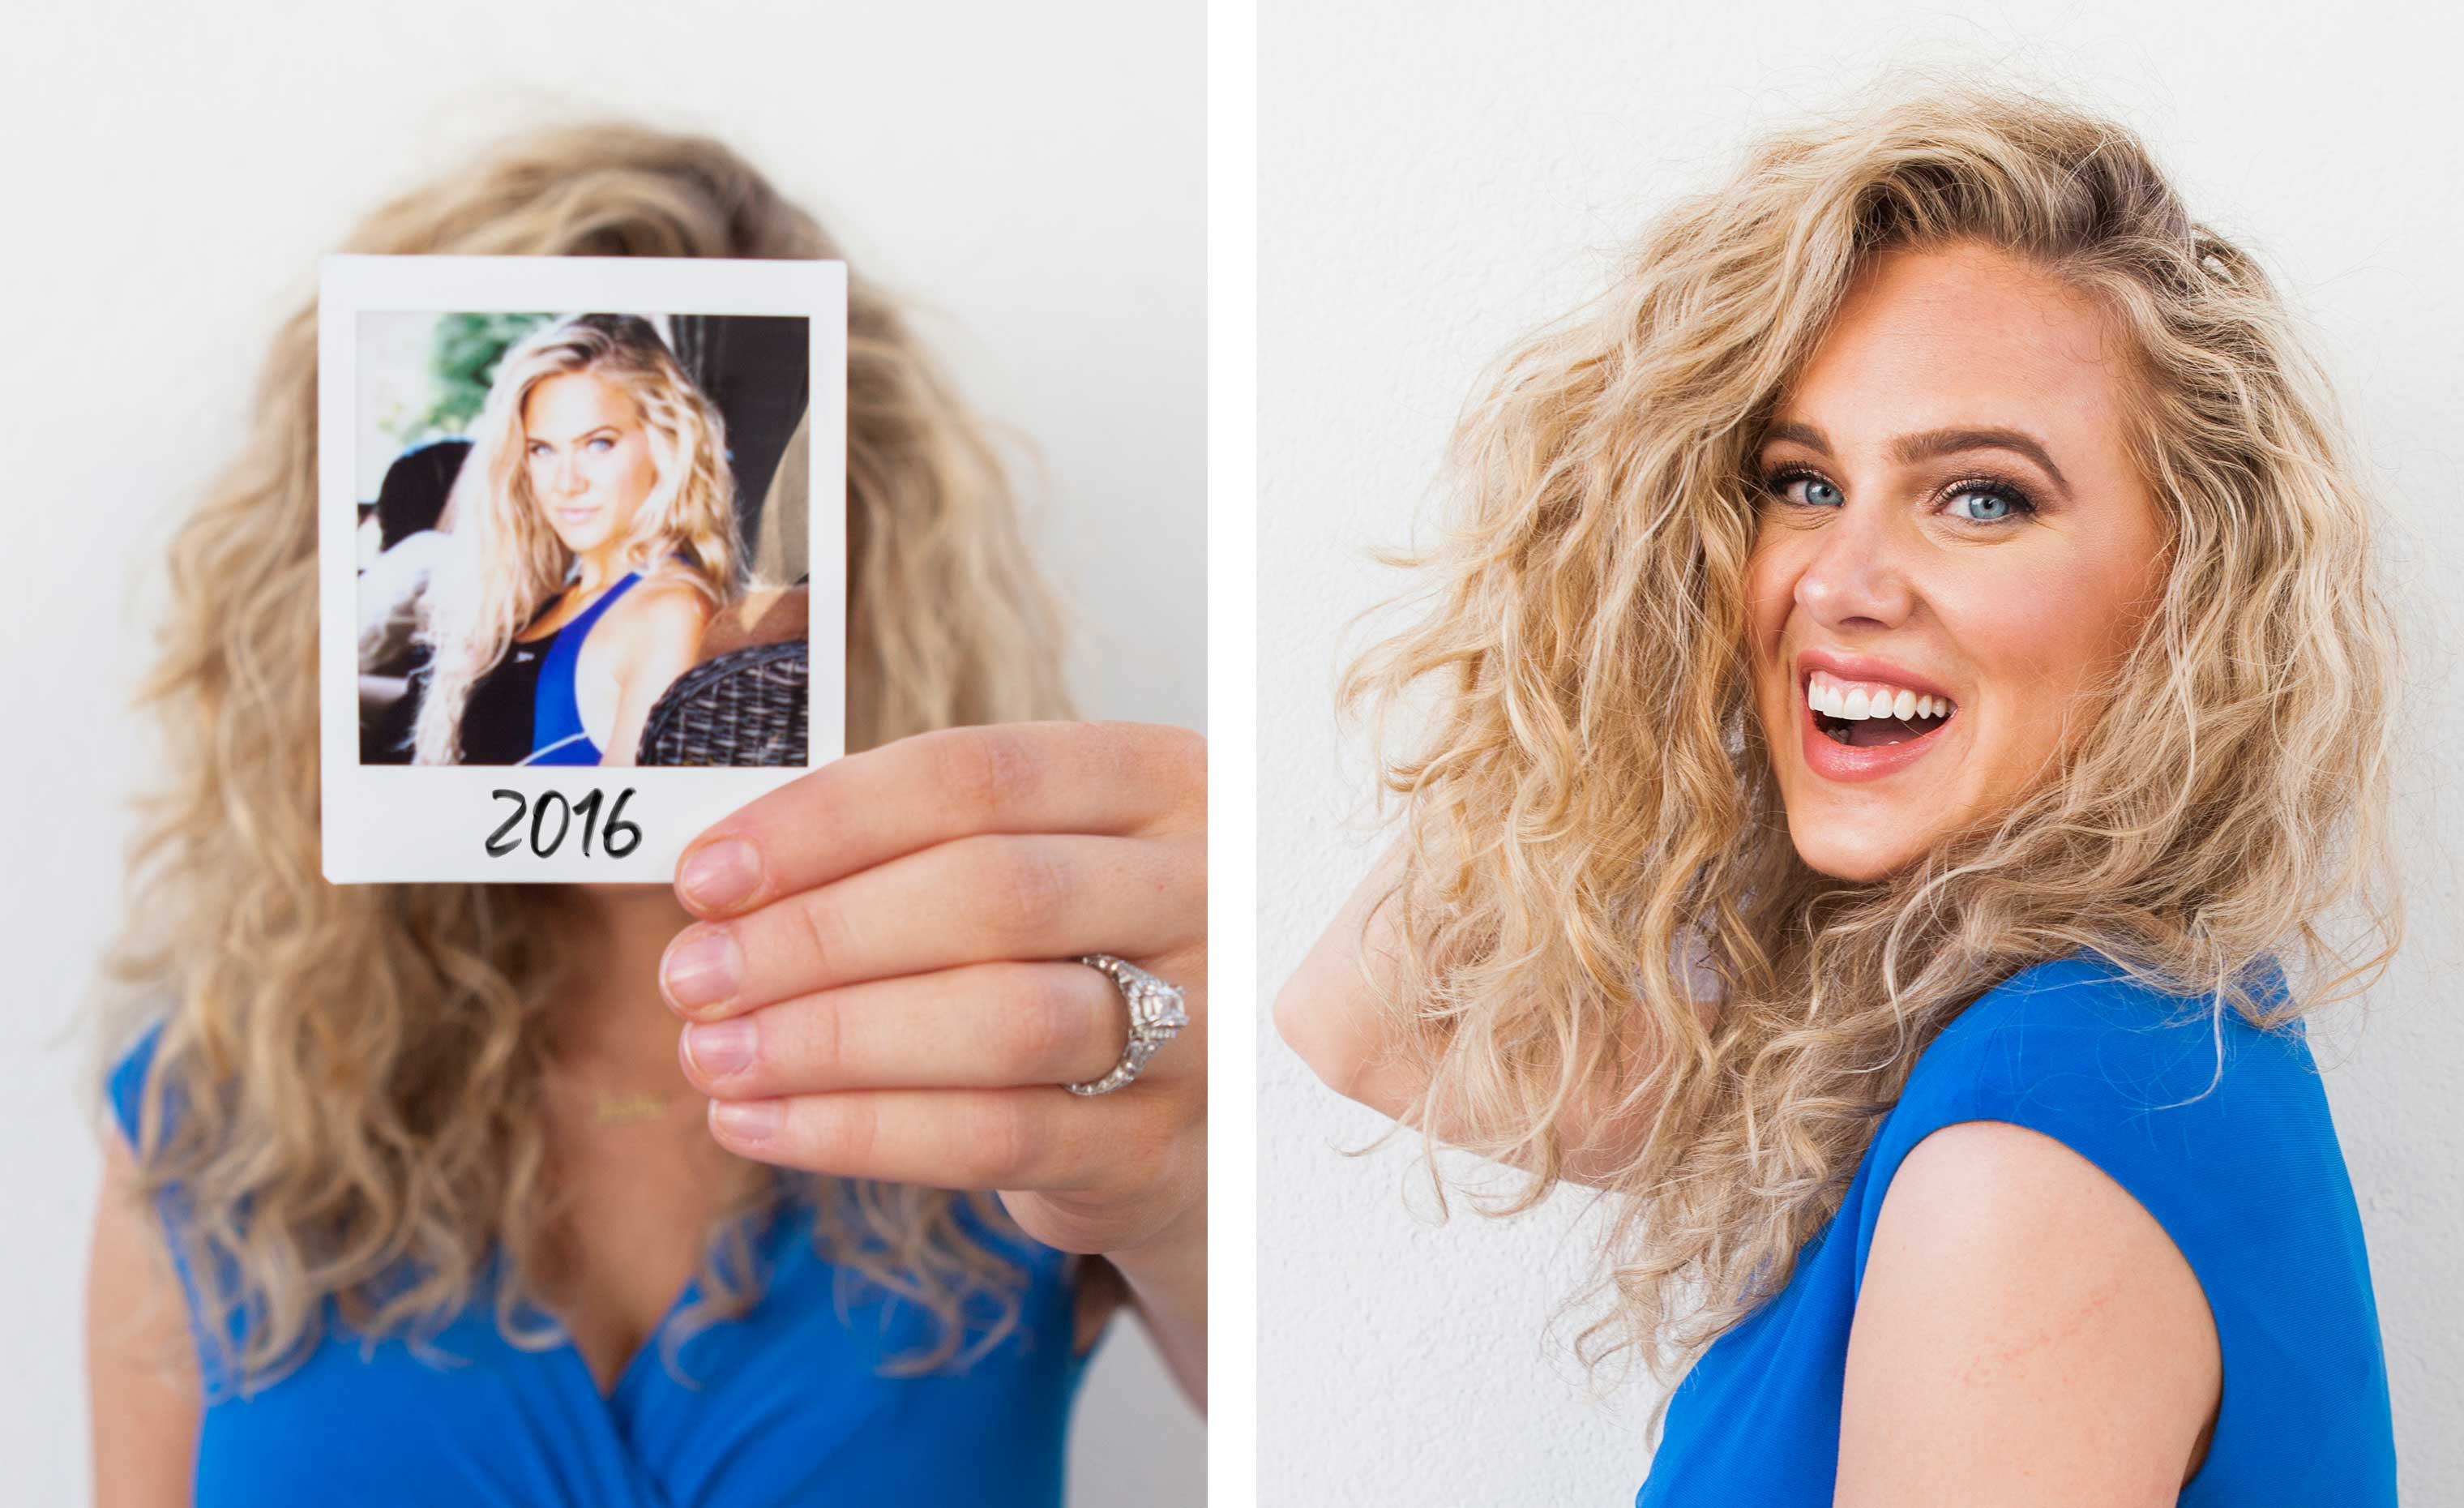 woman with blonde wavy hair holding up her before transformation photo next to her after